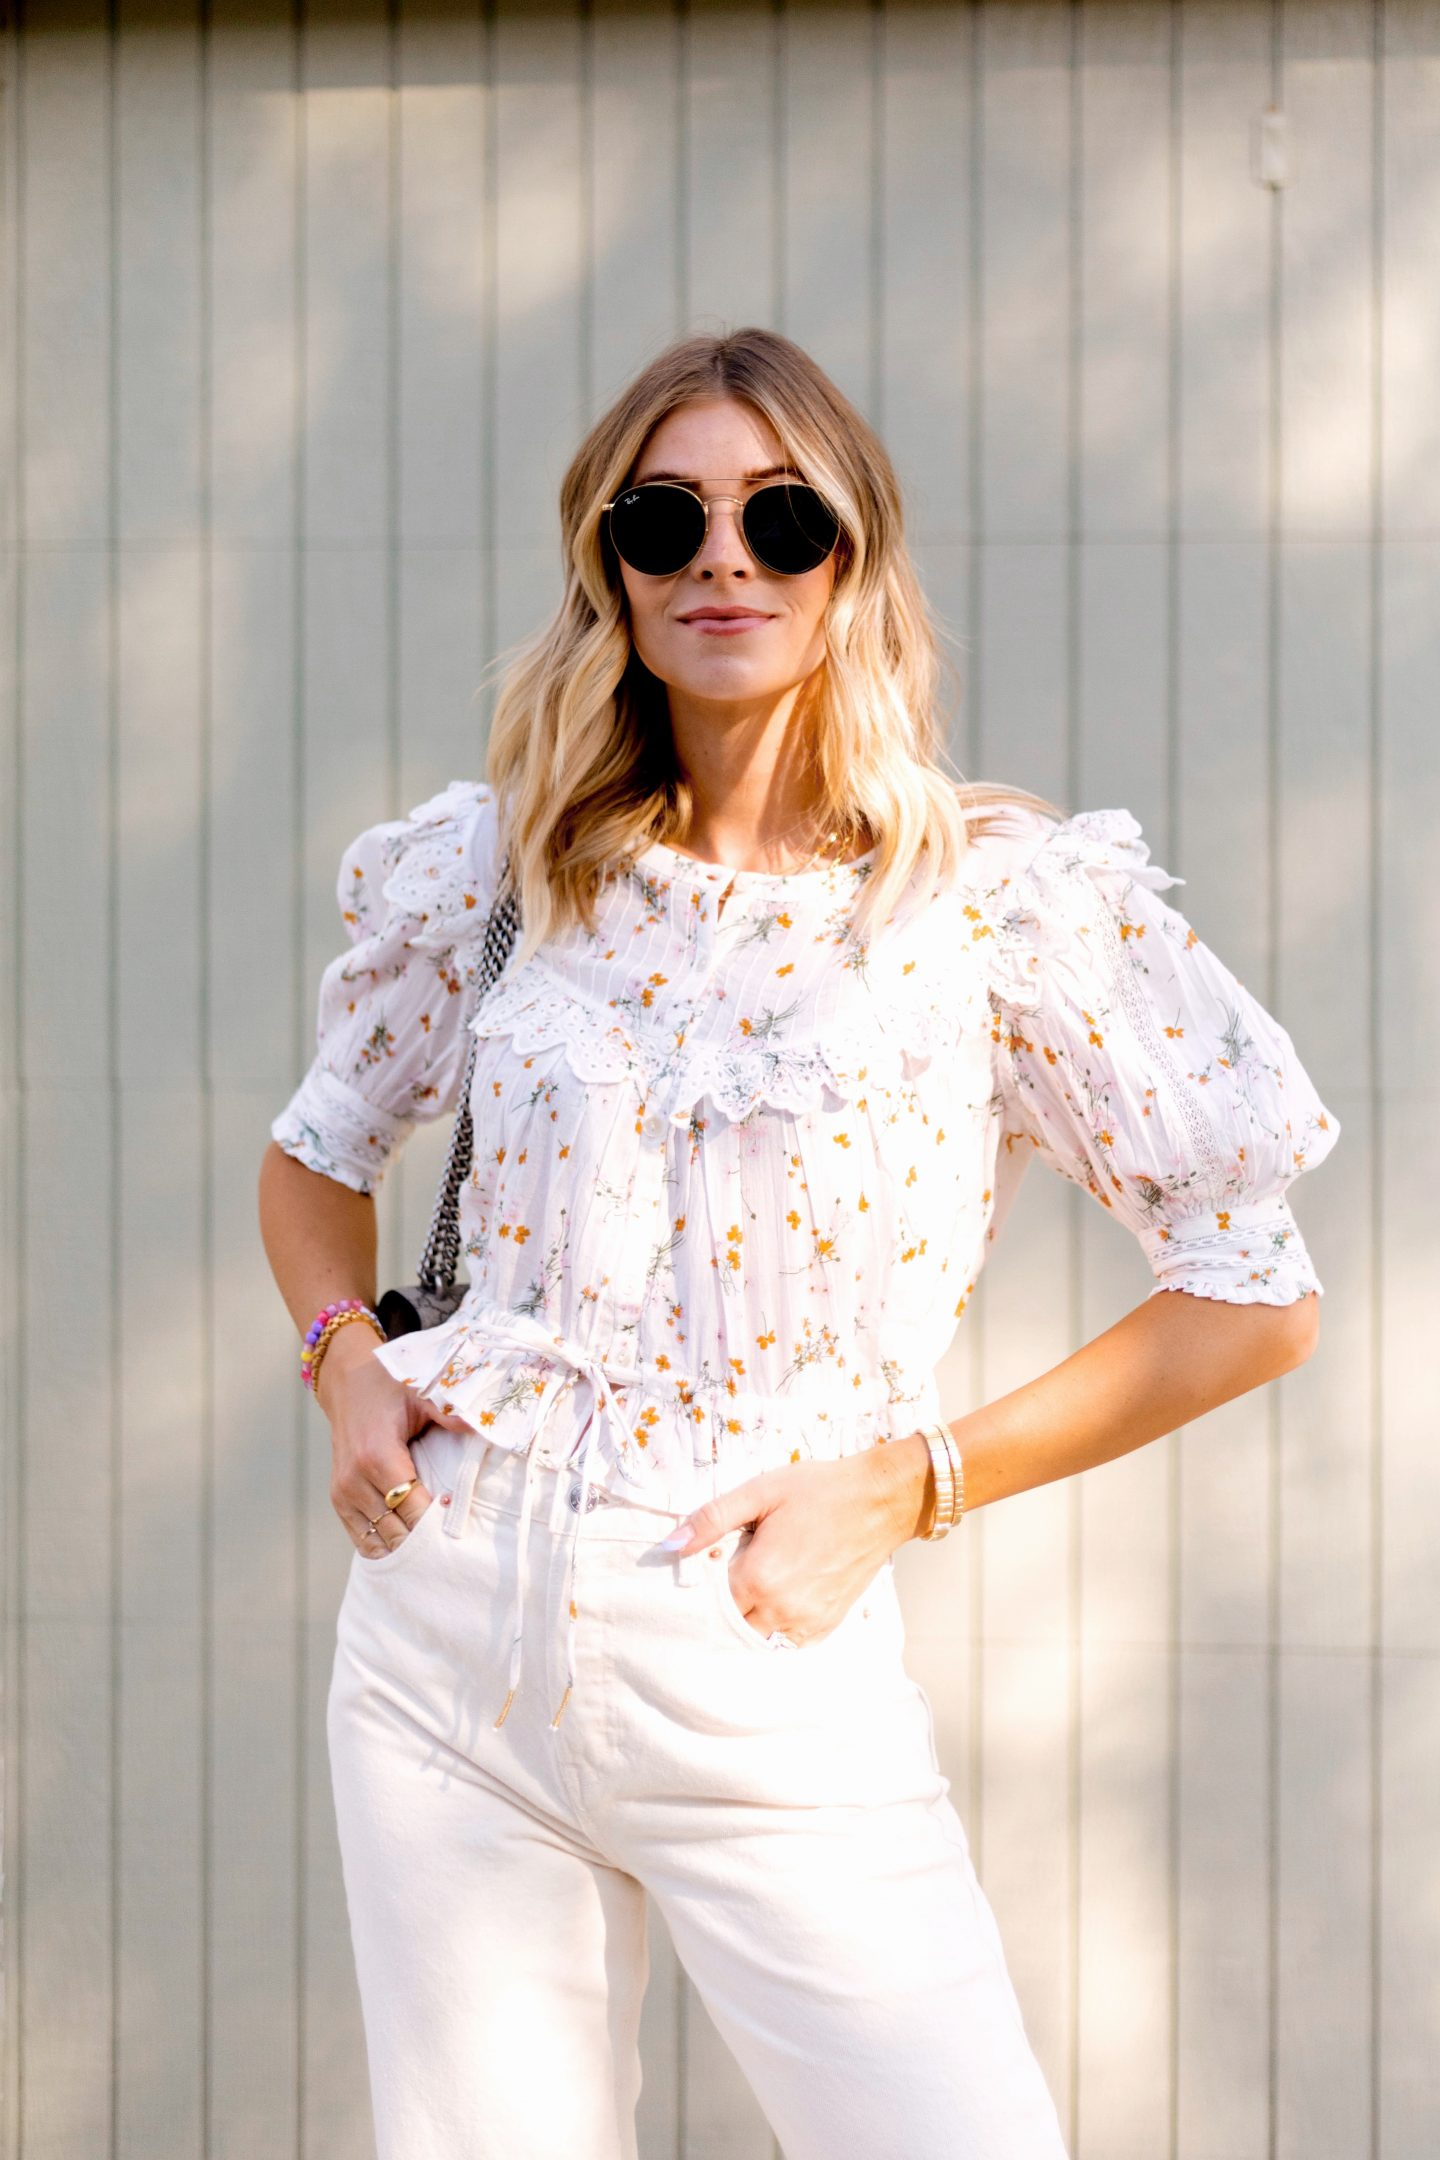 woman wearing printed top and sunglasses from august new arrivals